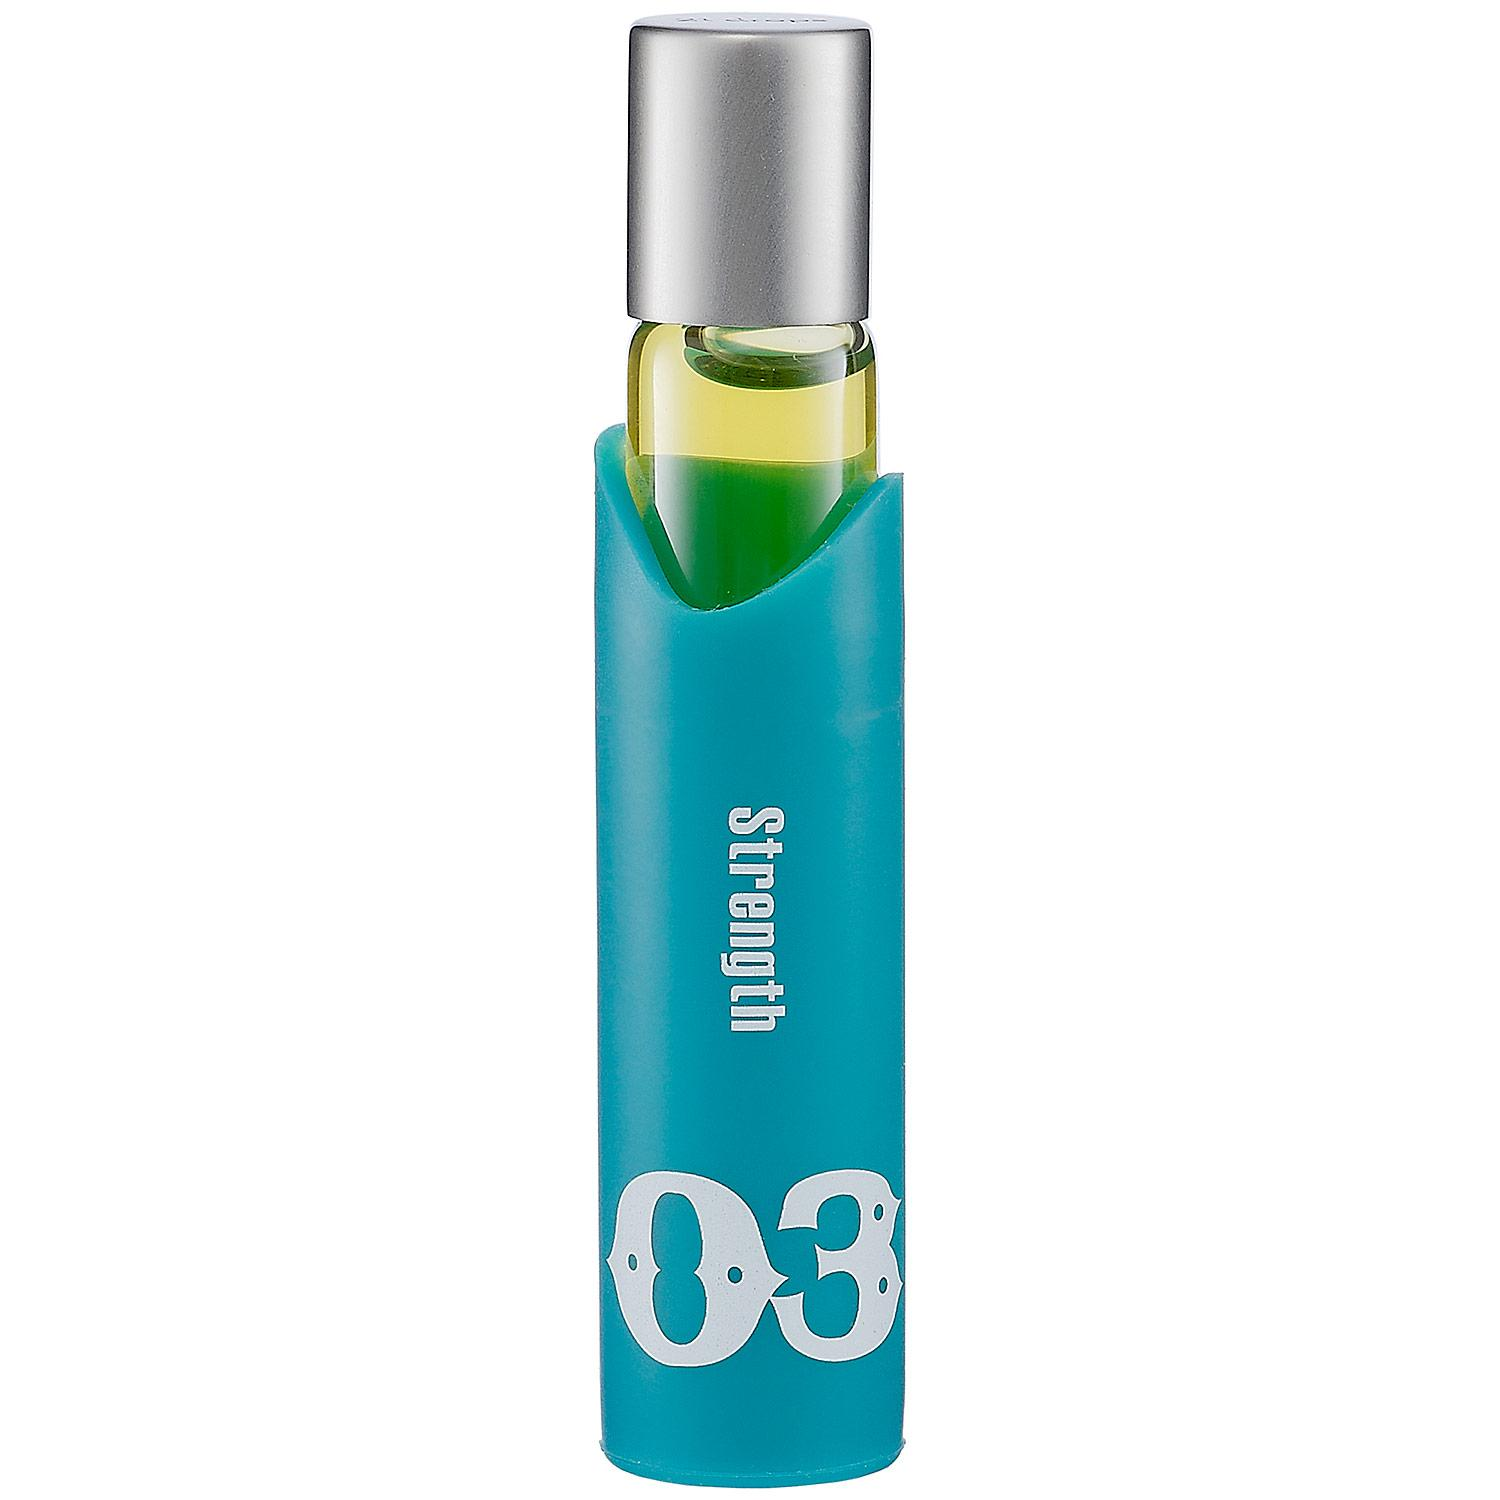 03 Strength Essential Oil Rollerball